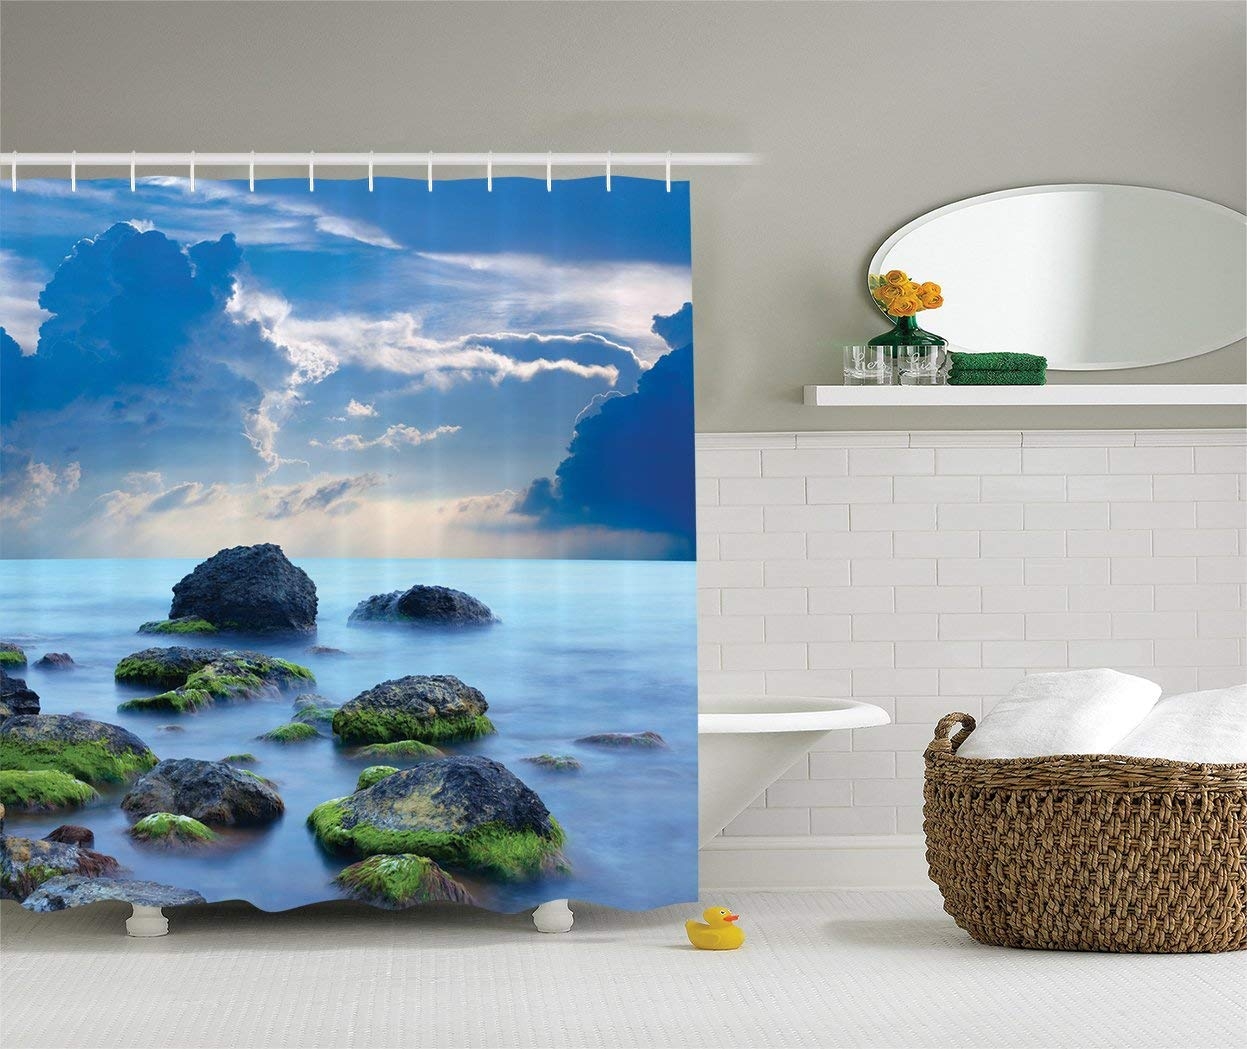 Get Quotations Ambesonne Sky Blue Shower Curtain Spa Decor By Sea Stones And Mystic Seaside Caribbean Photo